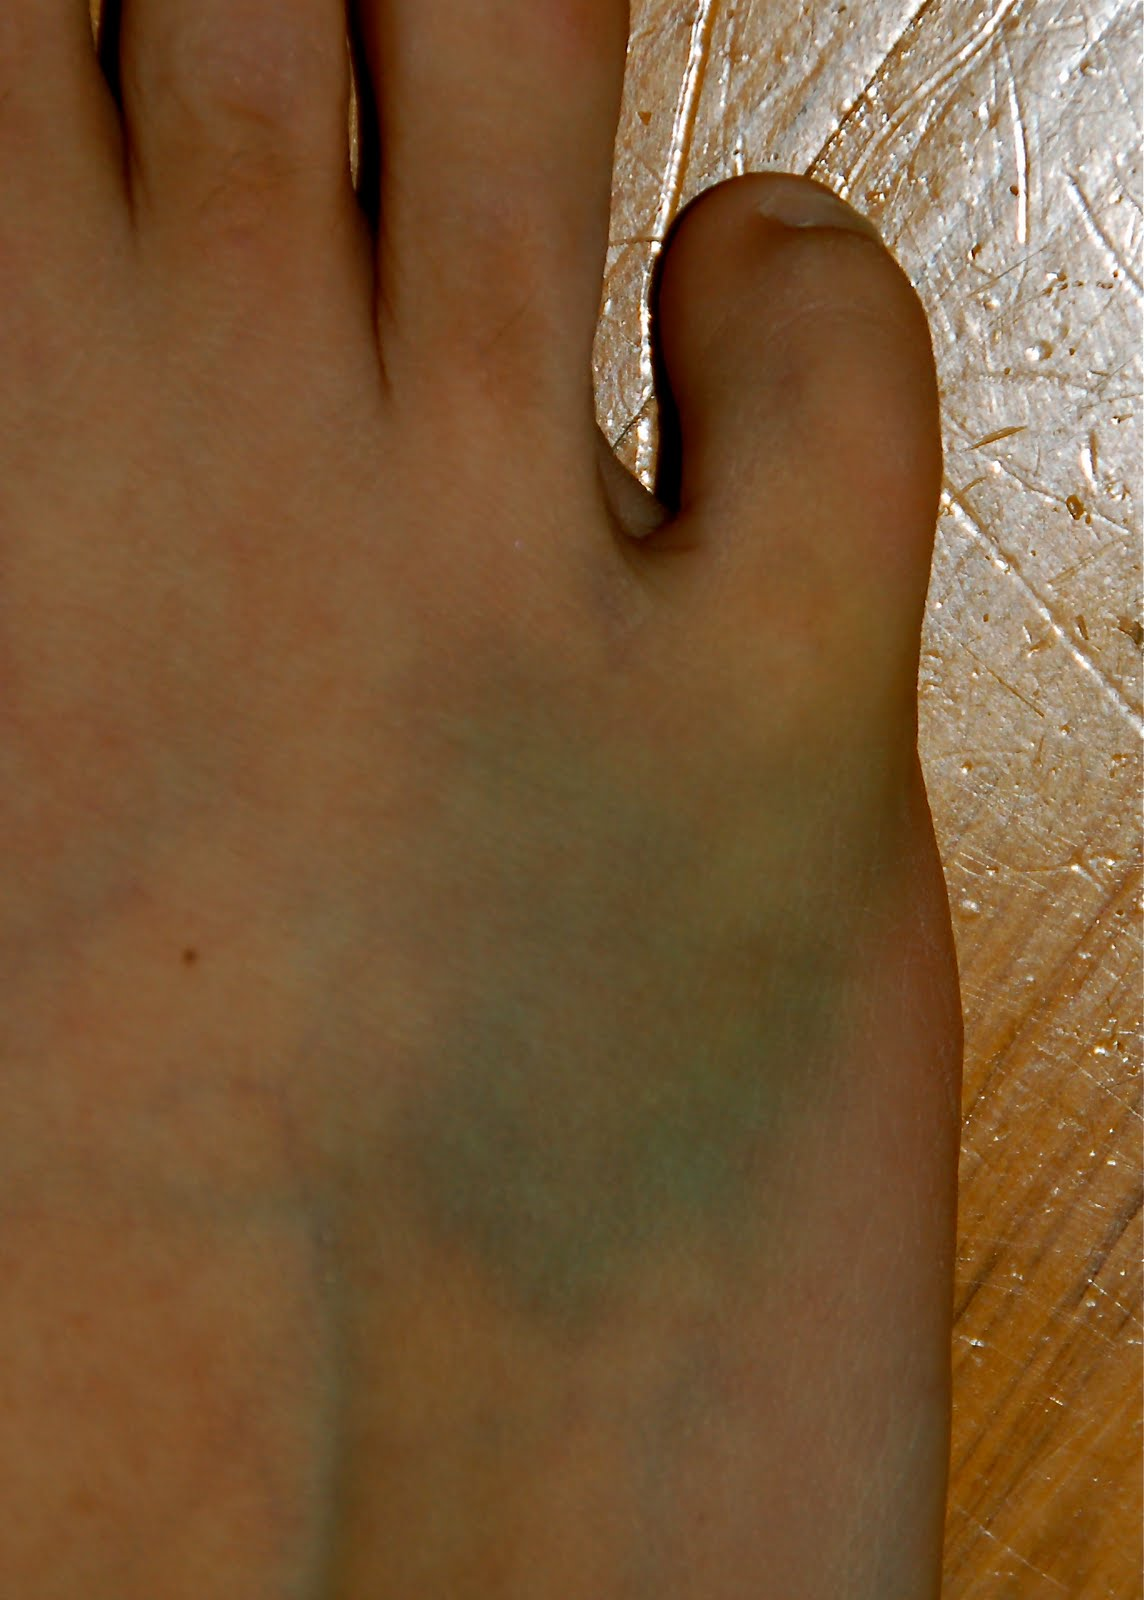 got a big picture of my discolored broken toe for you. You're welcome-4.bp.blogspot.com